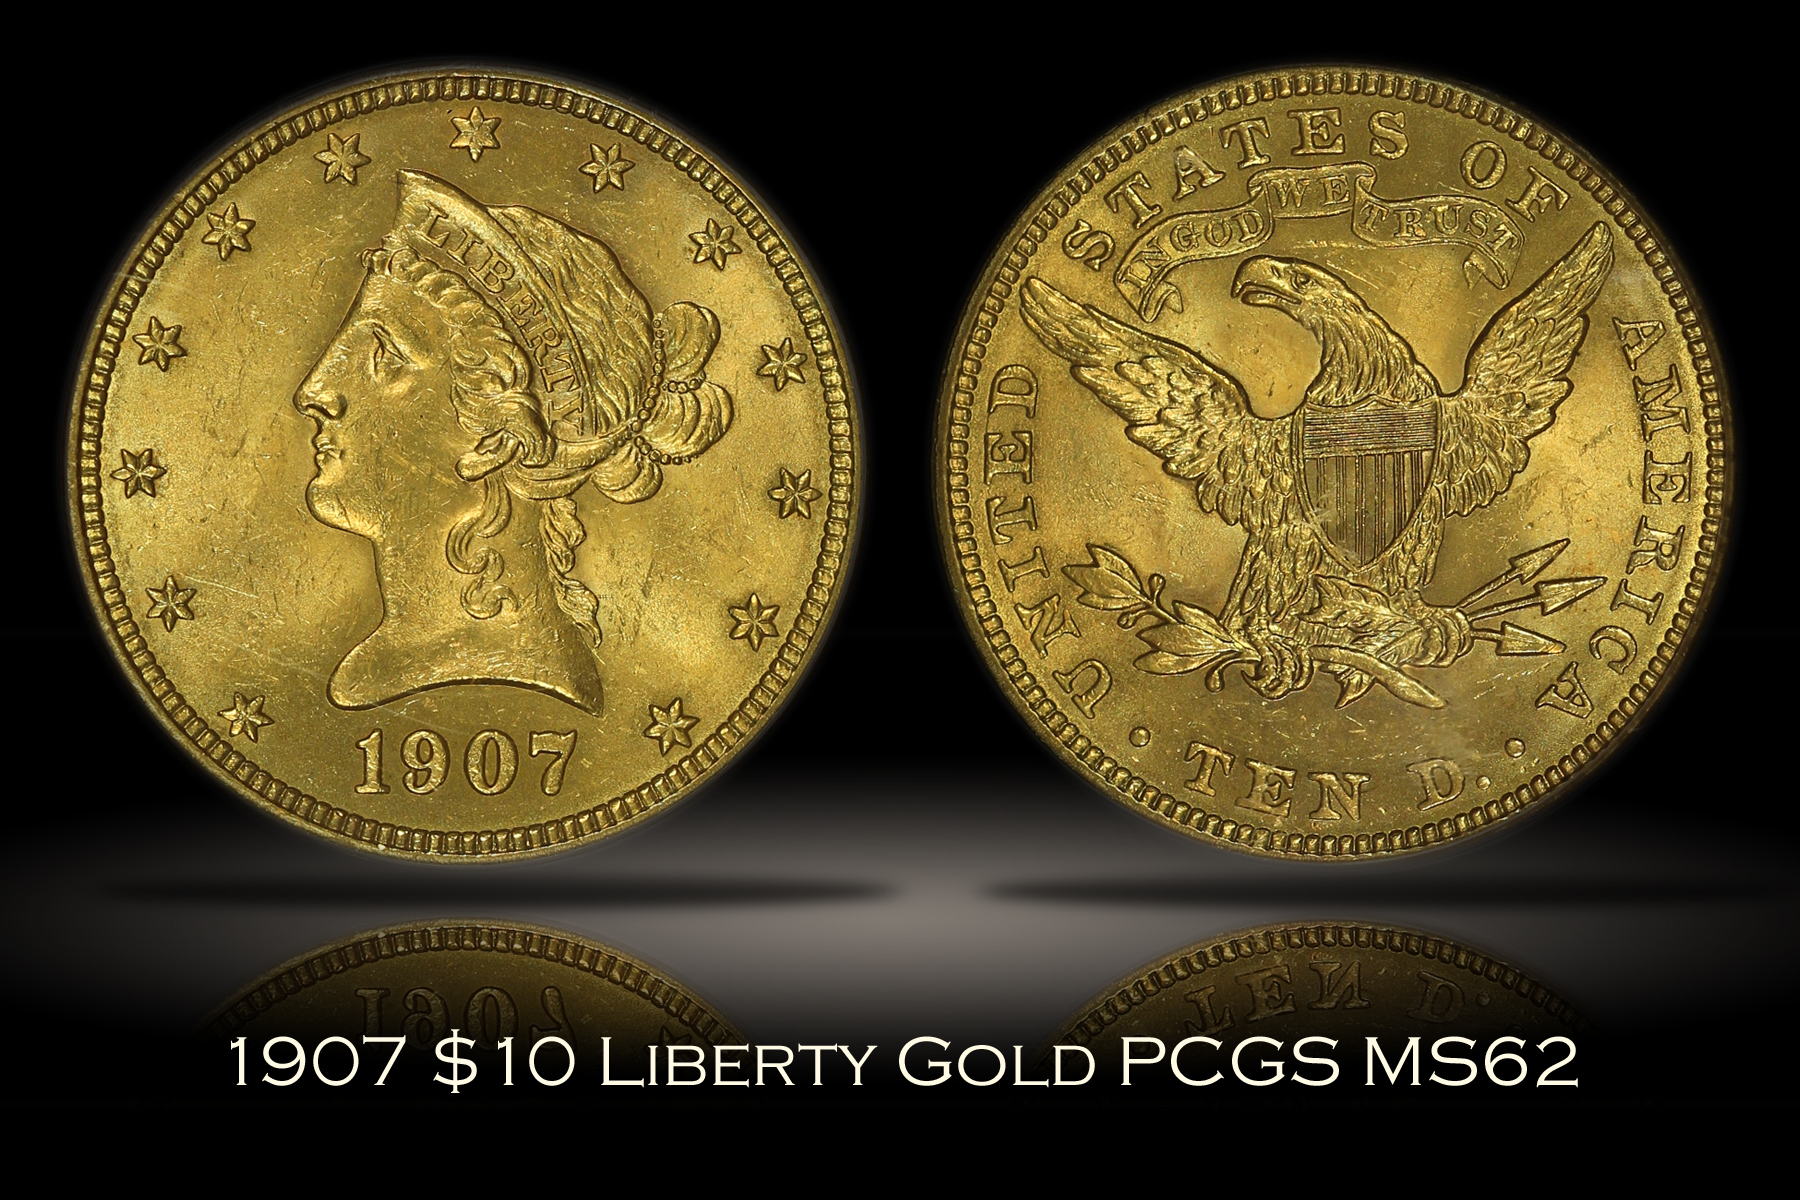 1907 $10 Liberty Gold PCGS MS62